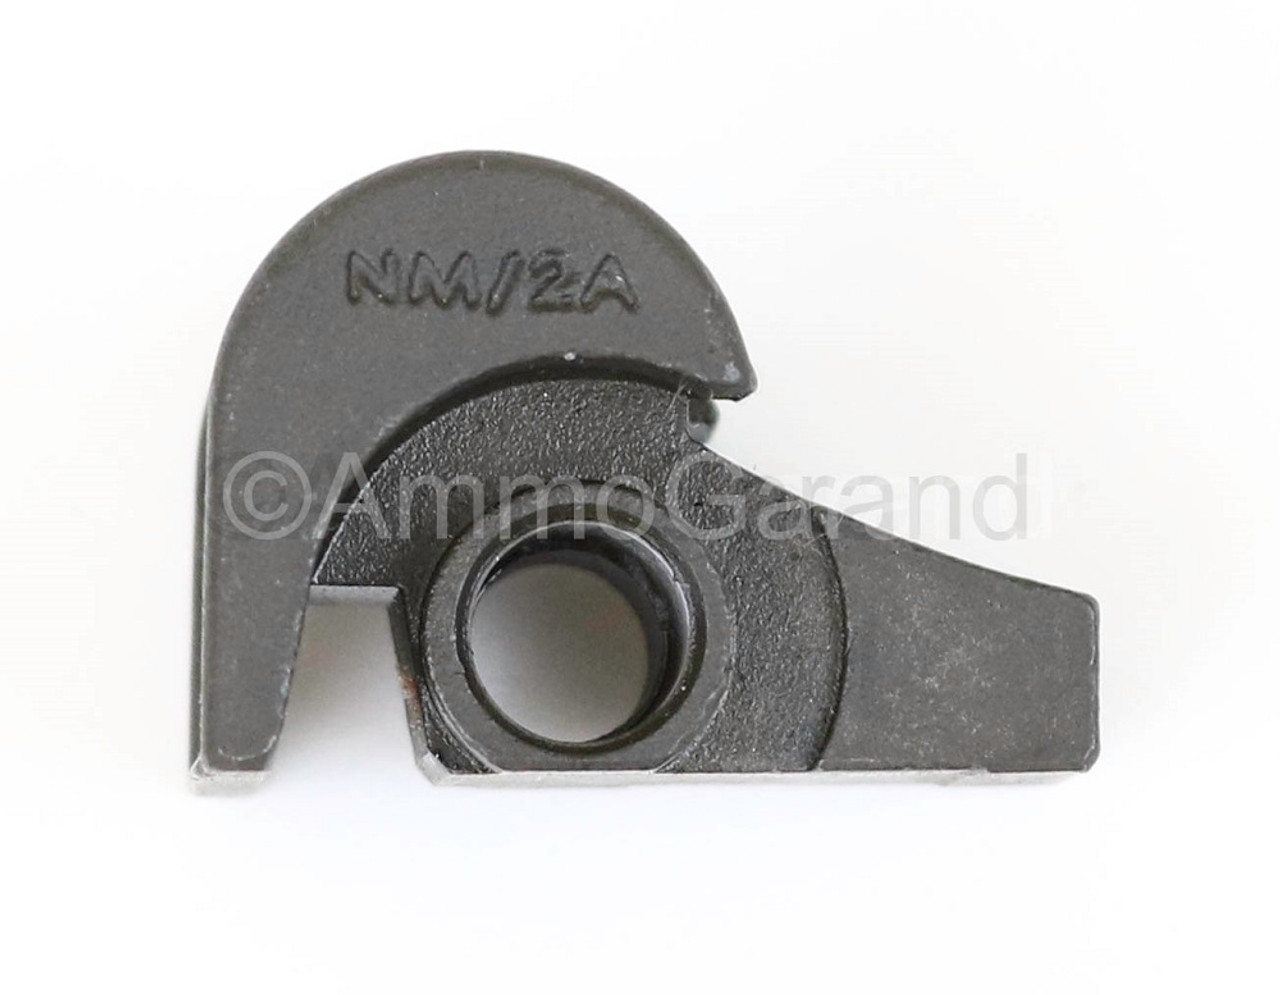 M1 Garand National Match Rear Sight Base NM/2A for Hooded Apertures fits M14 M1A - New